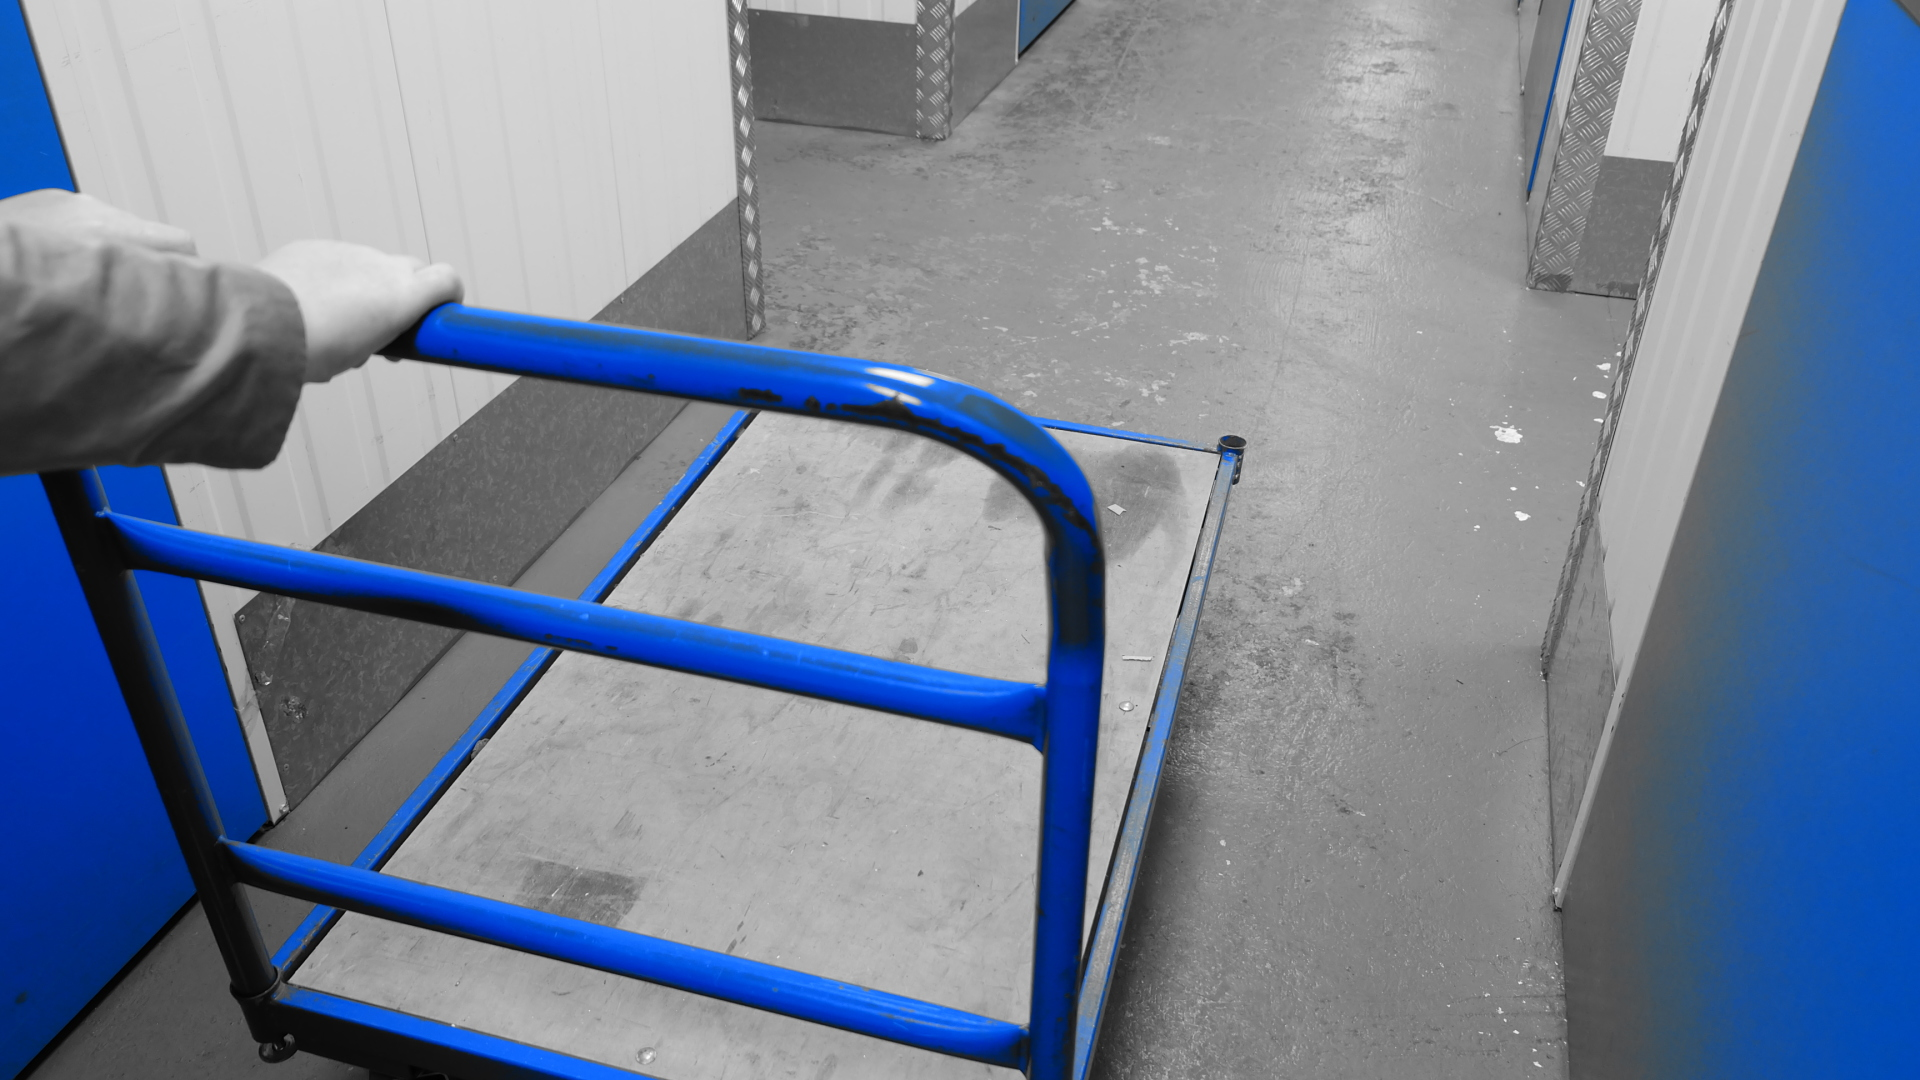 pallet sack truck in bojea self storage